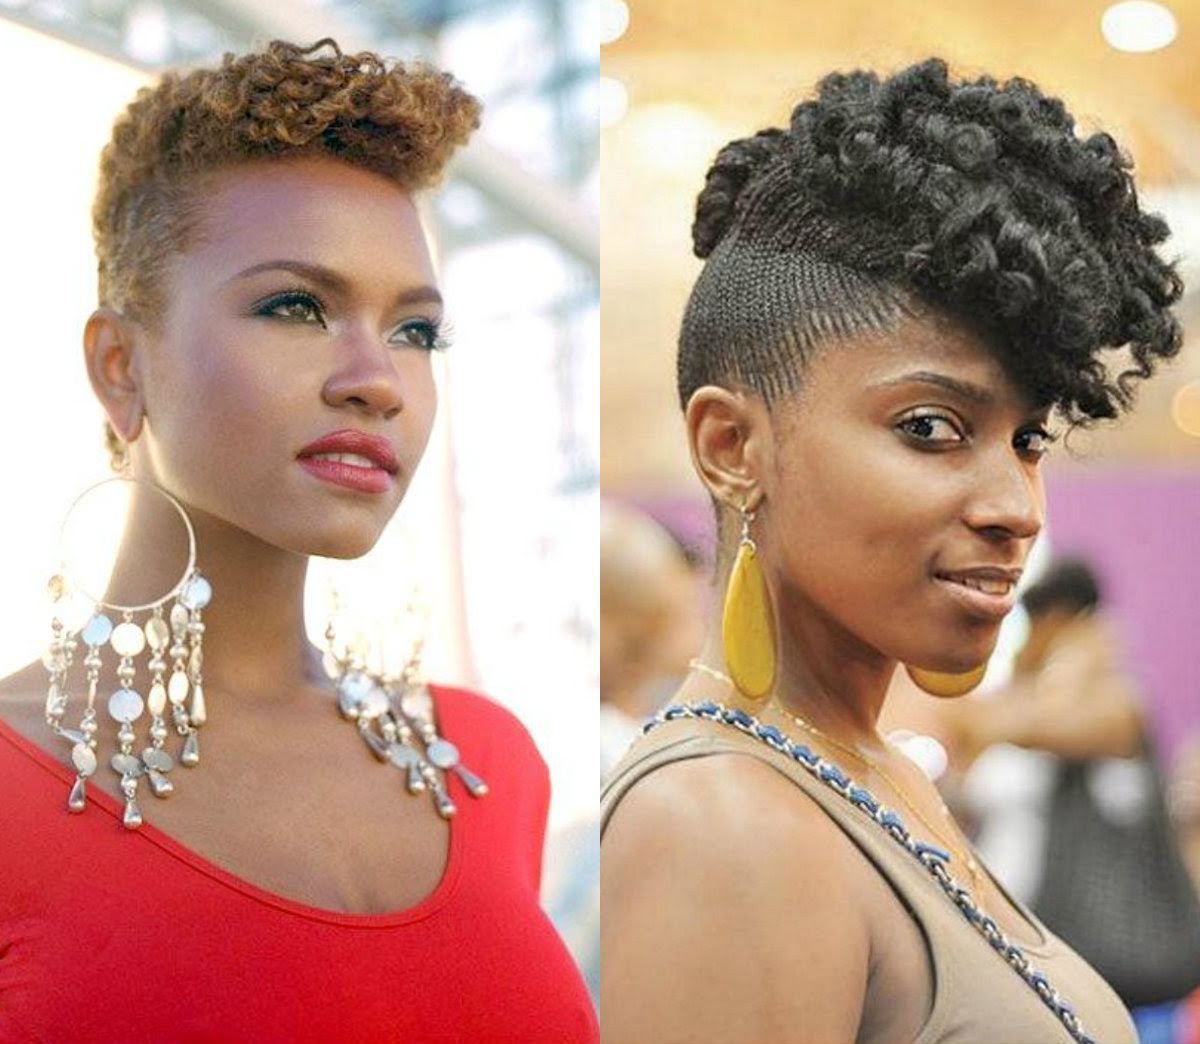 Black Curly Mohawk Hairstyle   which haircut suits my face